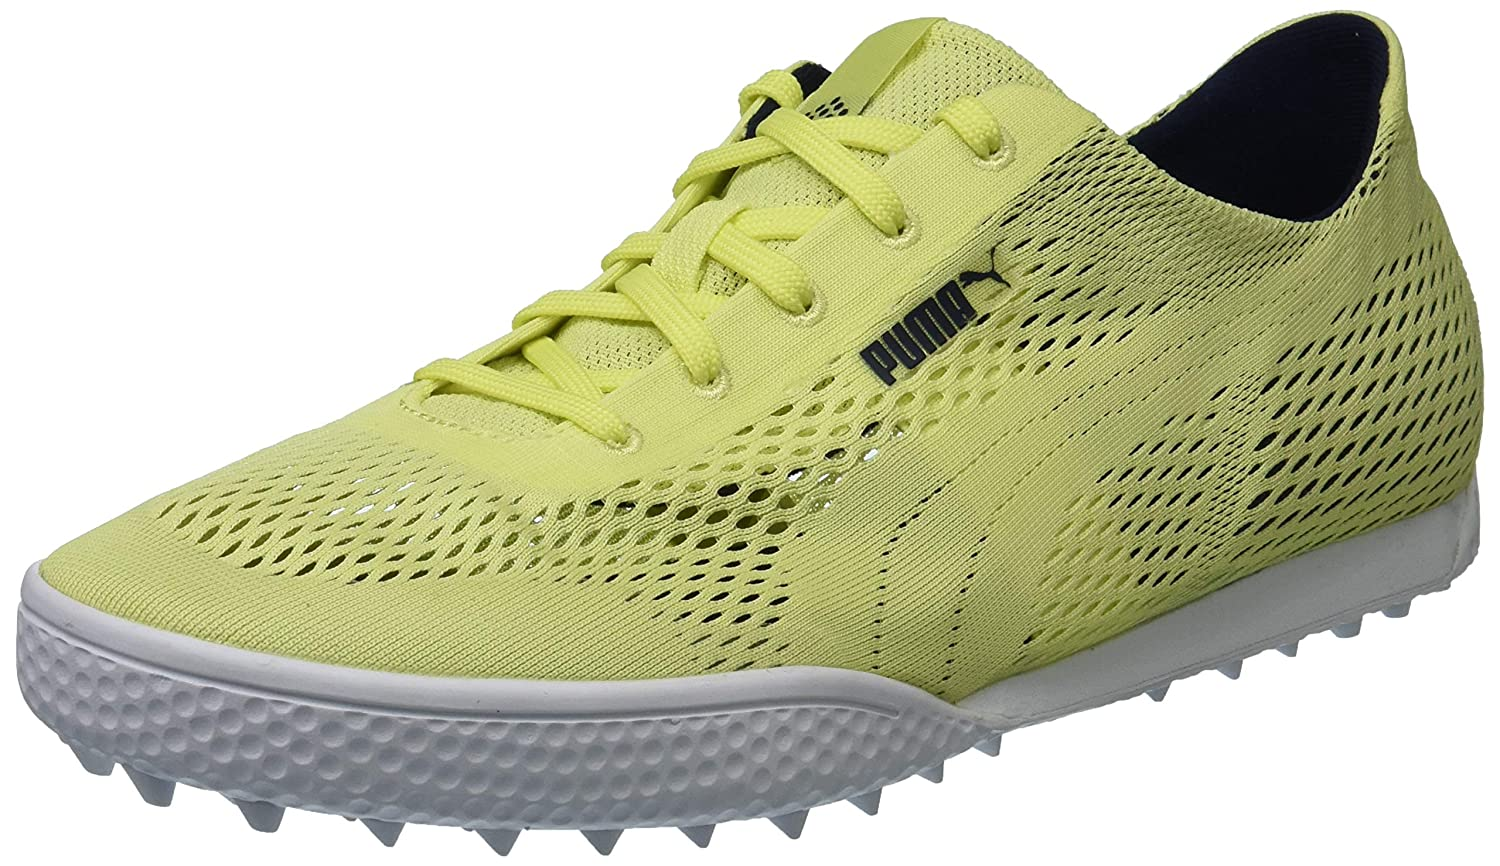 top-rated quality biggest discount noveldesign Puma Women's Monolite Cat Woven Golf Shoe: Buy Online at Low ...